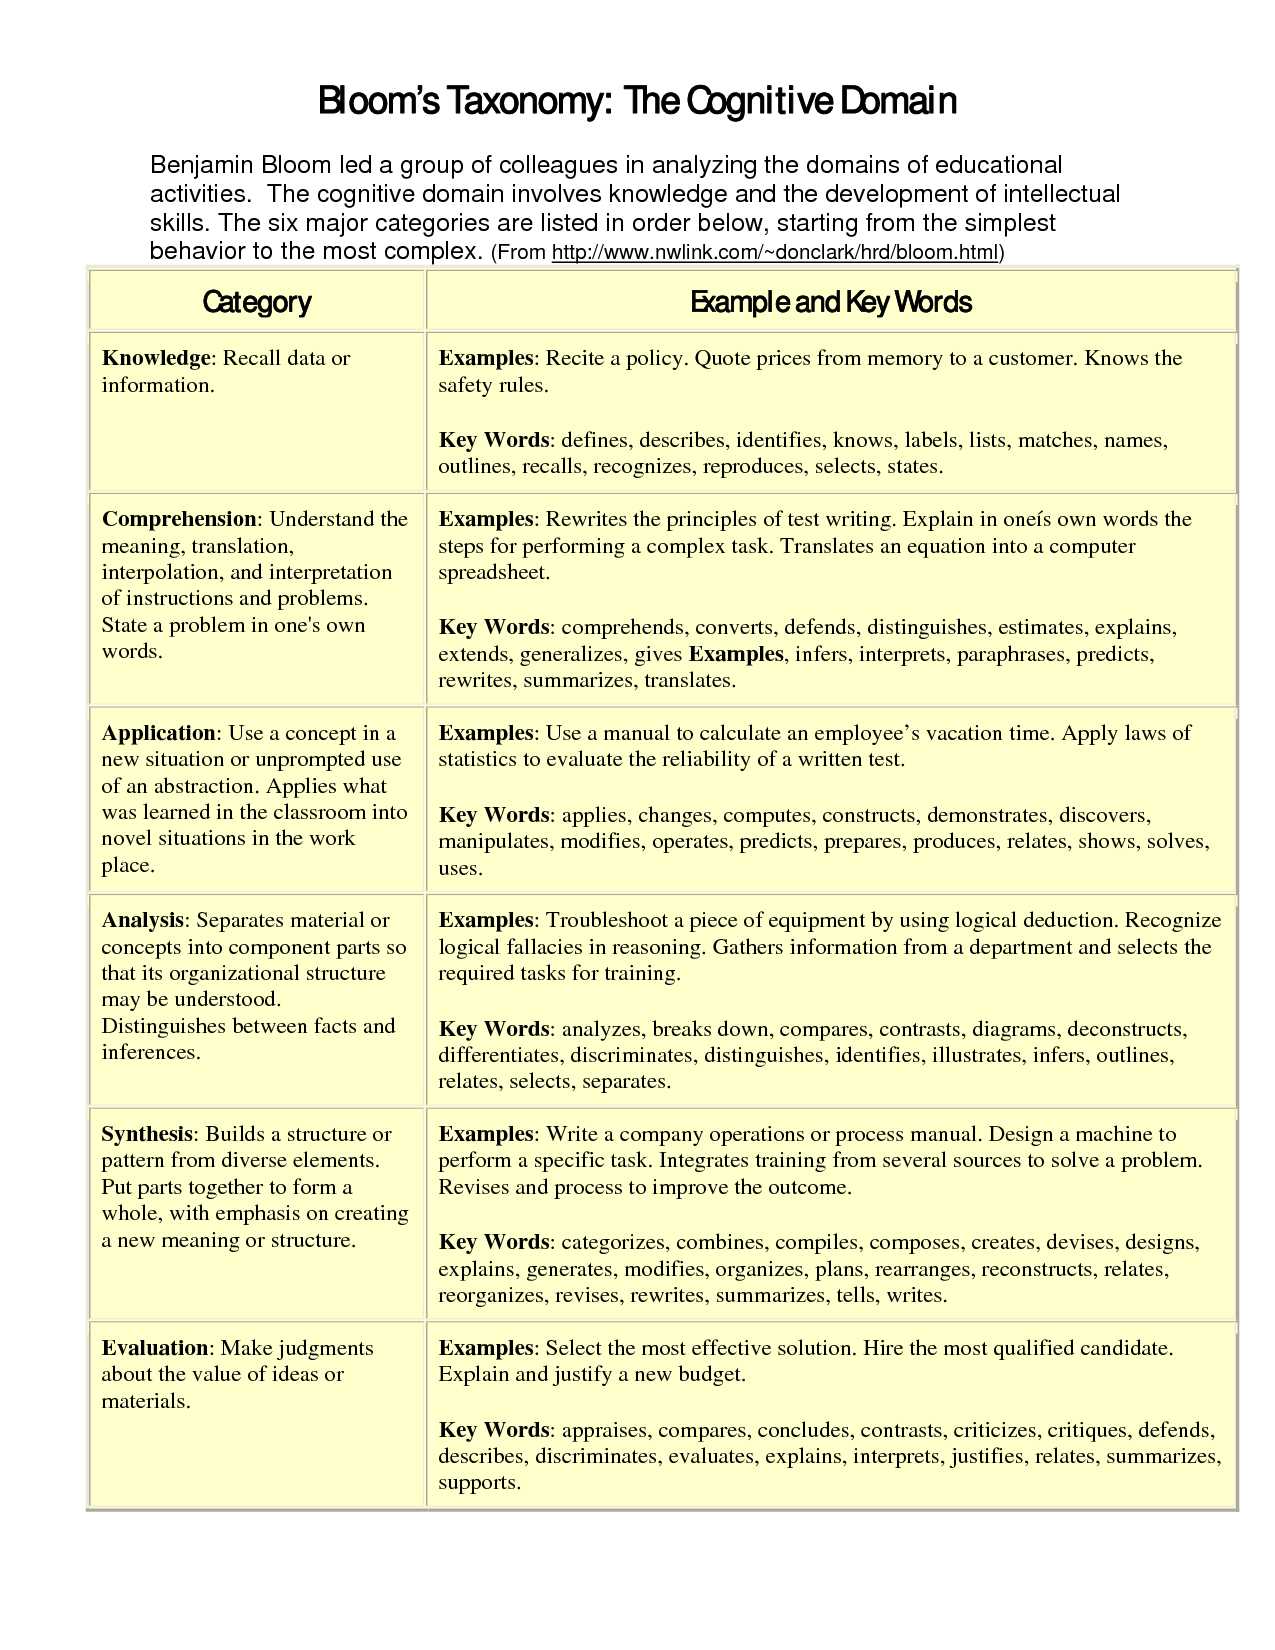 benjamin blooms cognitive taxonomy Cognitive domain / benjamin s bloom et al bloom's taxonomy / edward j bloom's taxonomy action verb list for the cognitive domain bloom's taxonomy.